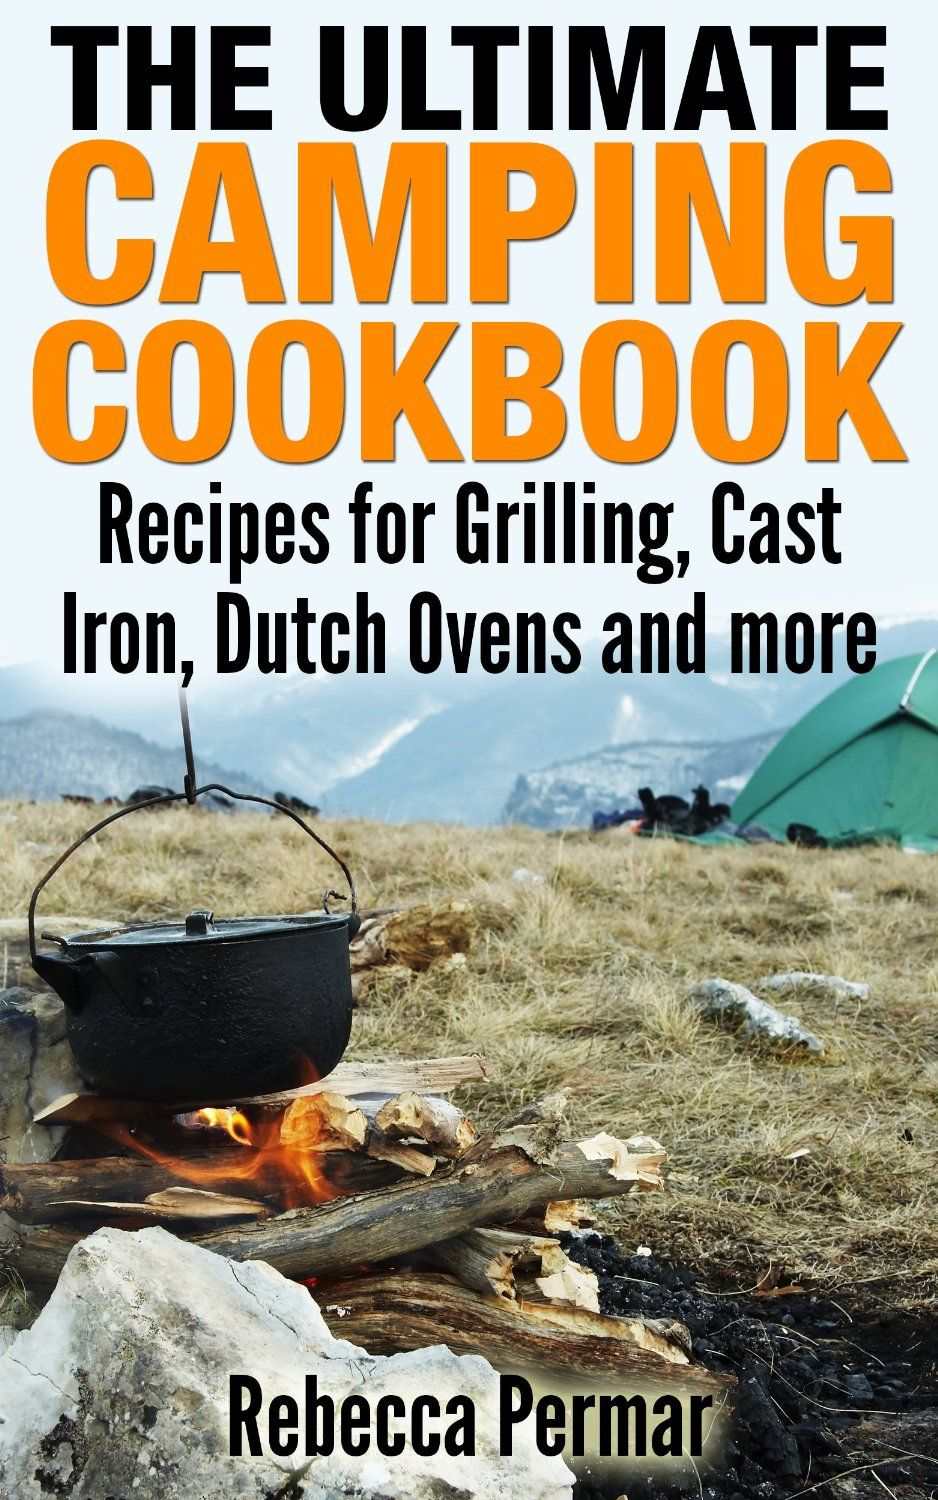 Free ebooks warrior poet twelve years a slave gluten free diet free ebook the ultimate camping cookbook recipes for grilling cast iron dutch fandeluxe Document